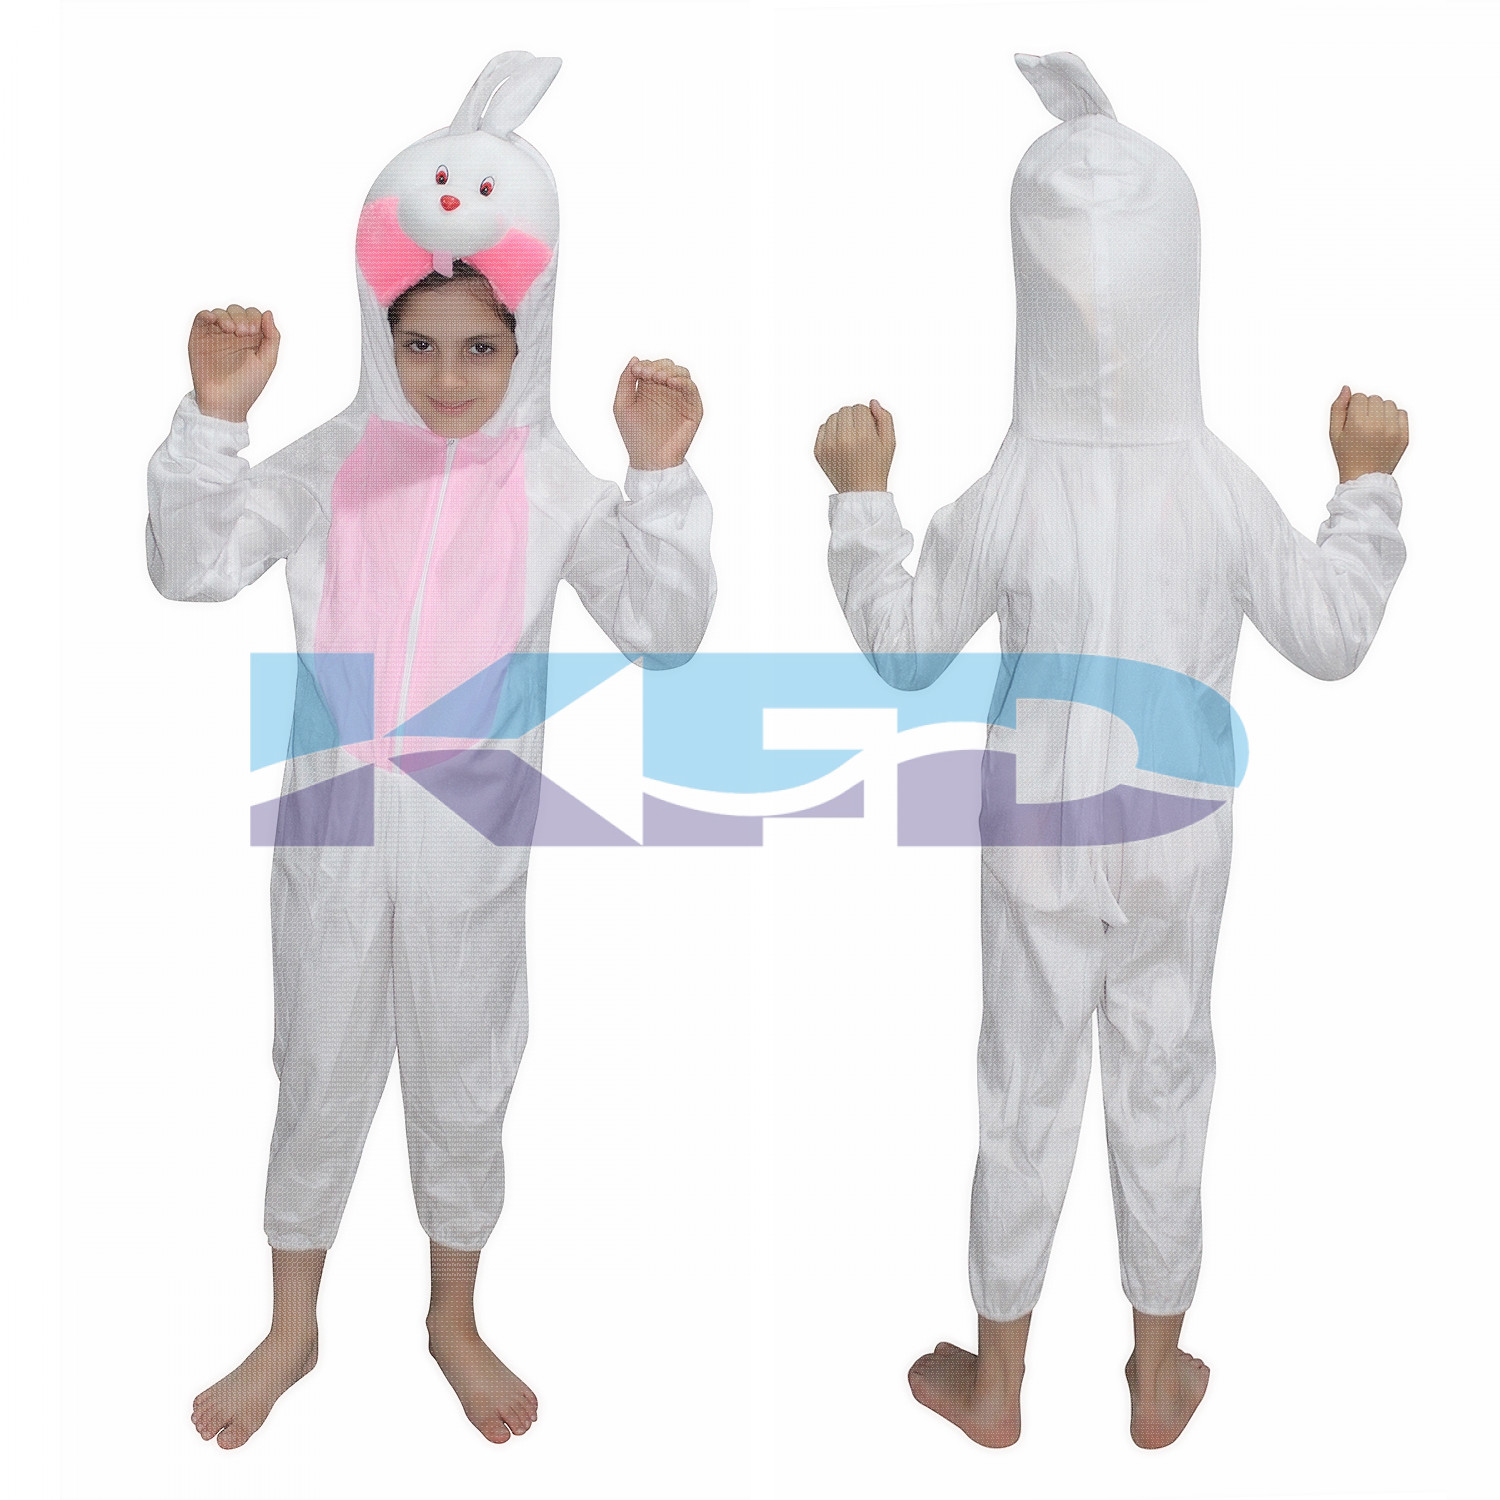 Rabbit fancy dress for kids,Pet Animal Costume for School Annual function/Theme Party/Competition/Stage Shows Dress